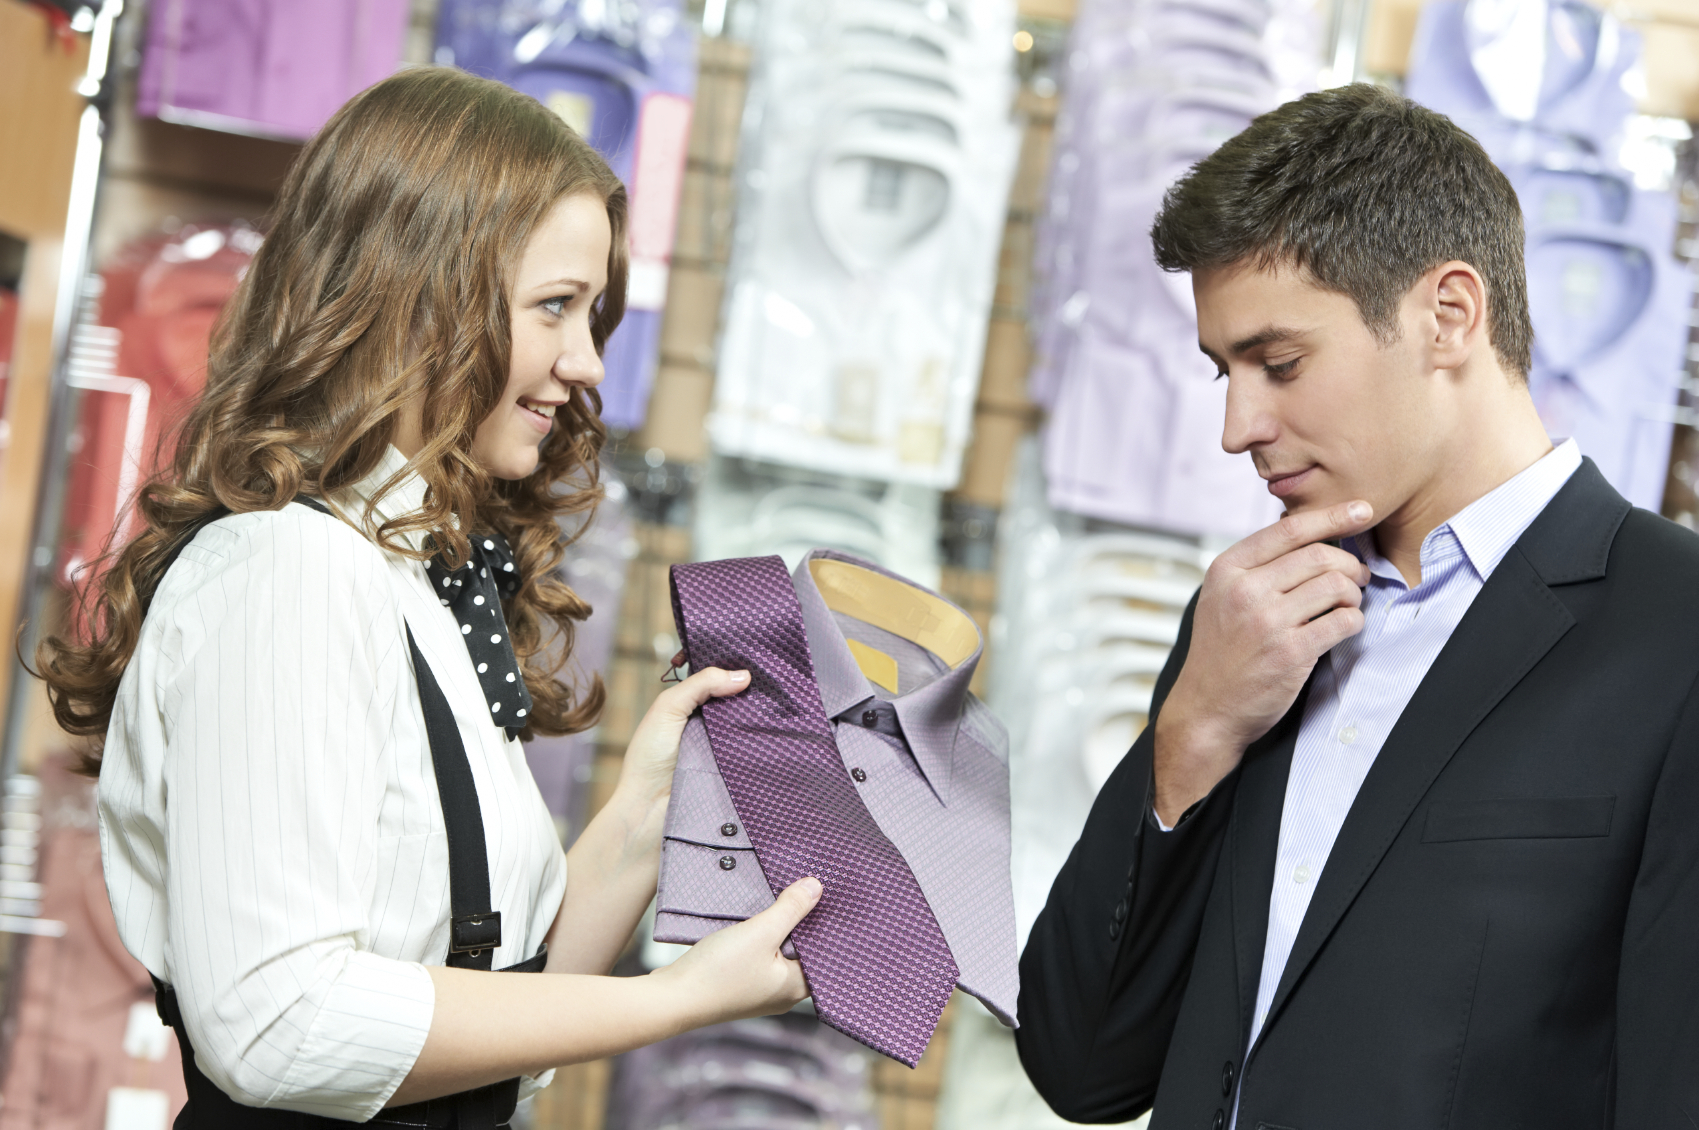 c46daea704 Suggestive Selling in Retail  How to Increase Add-On Sales without Being  Sleazy - Vend Retail Blog